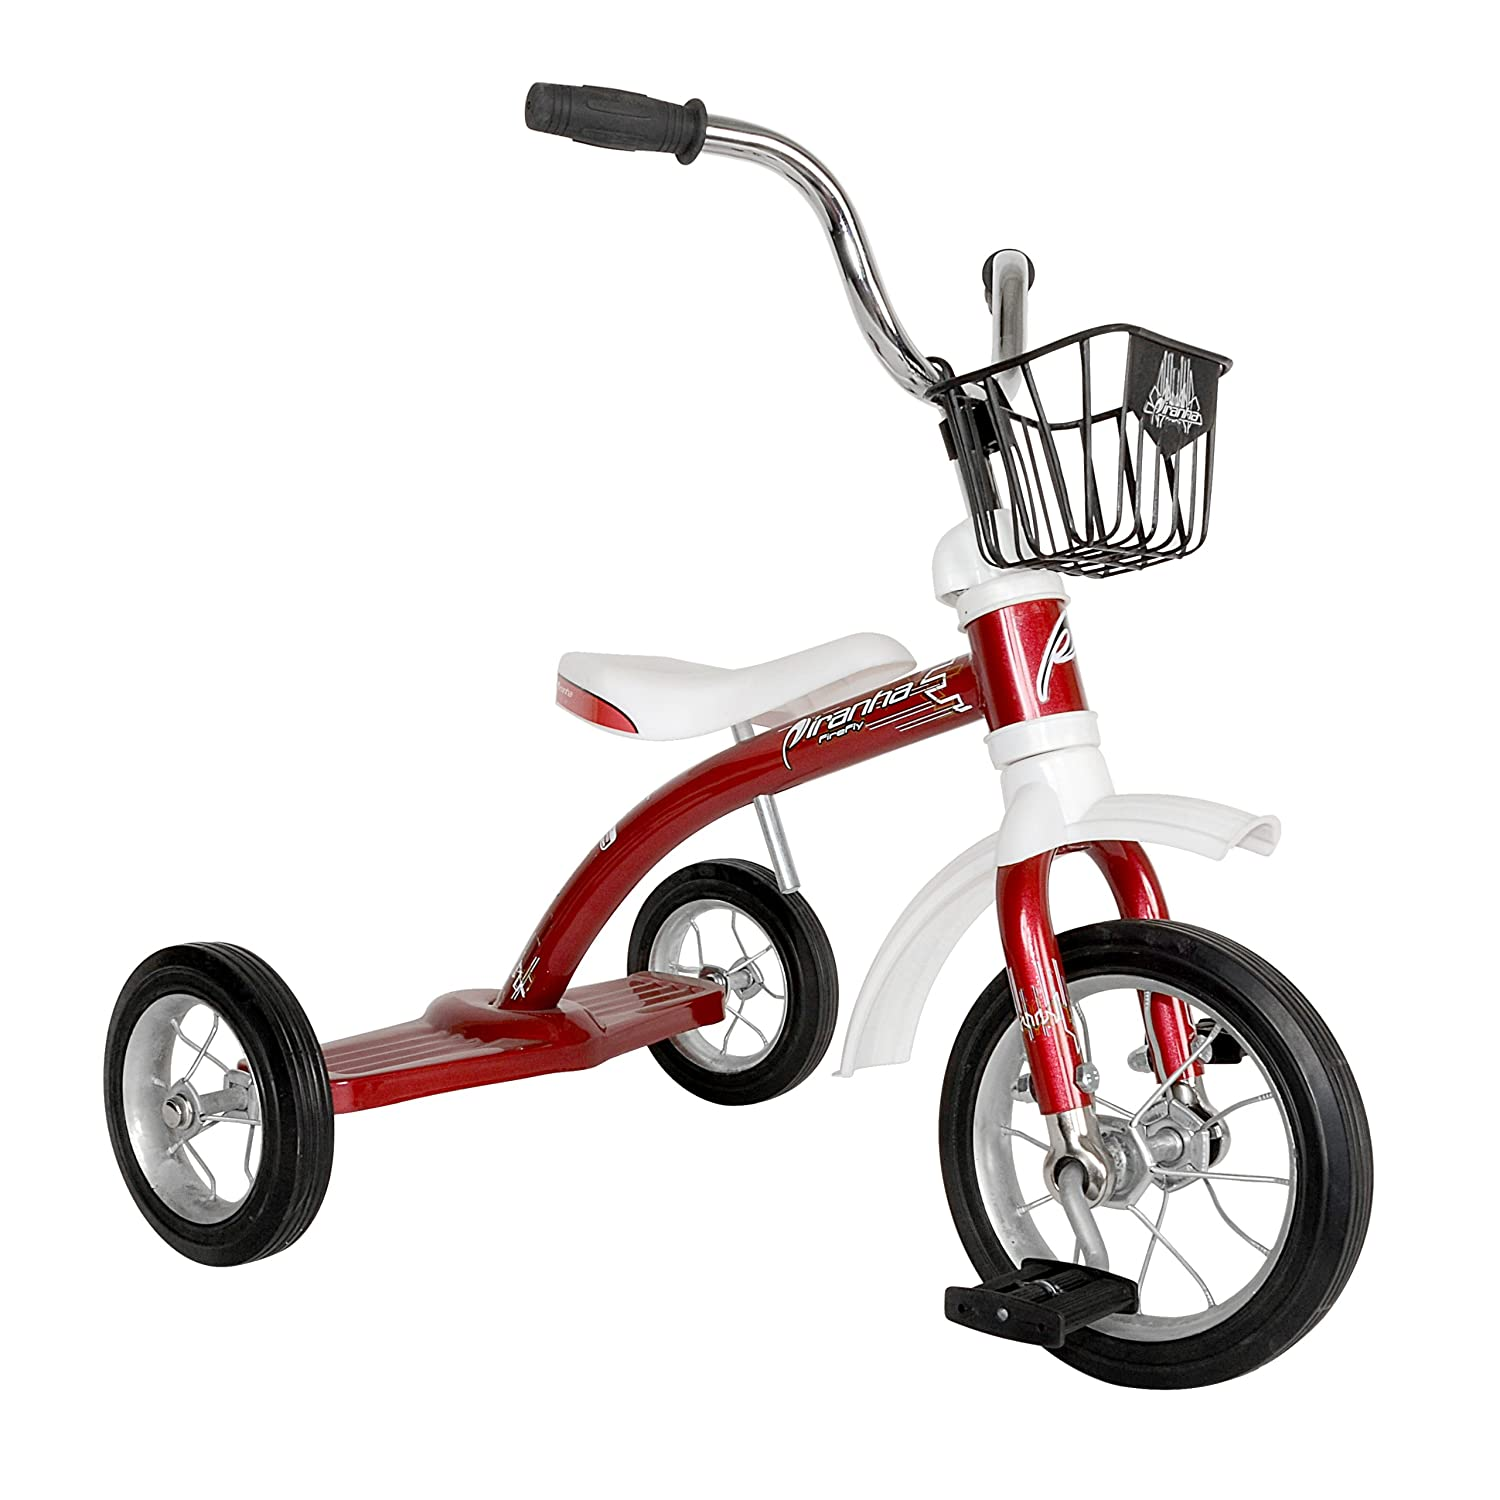 Piranha front Firefly Classic Tricycle, for for Boys and Girls, Red, inch 10 inch front wheel 141[並行輸入] B00DM1MS9A, シューズショップ KONI KONI:34c10a28 --- number-directory.top